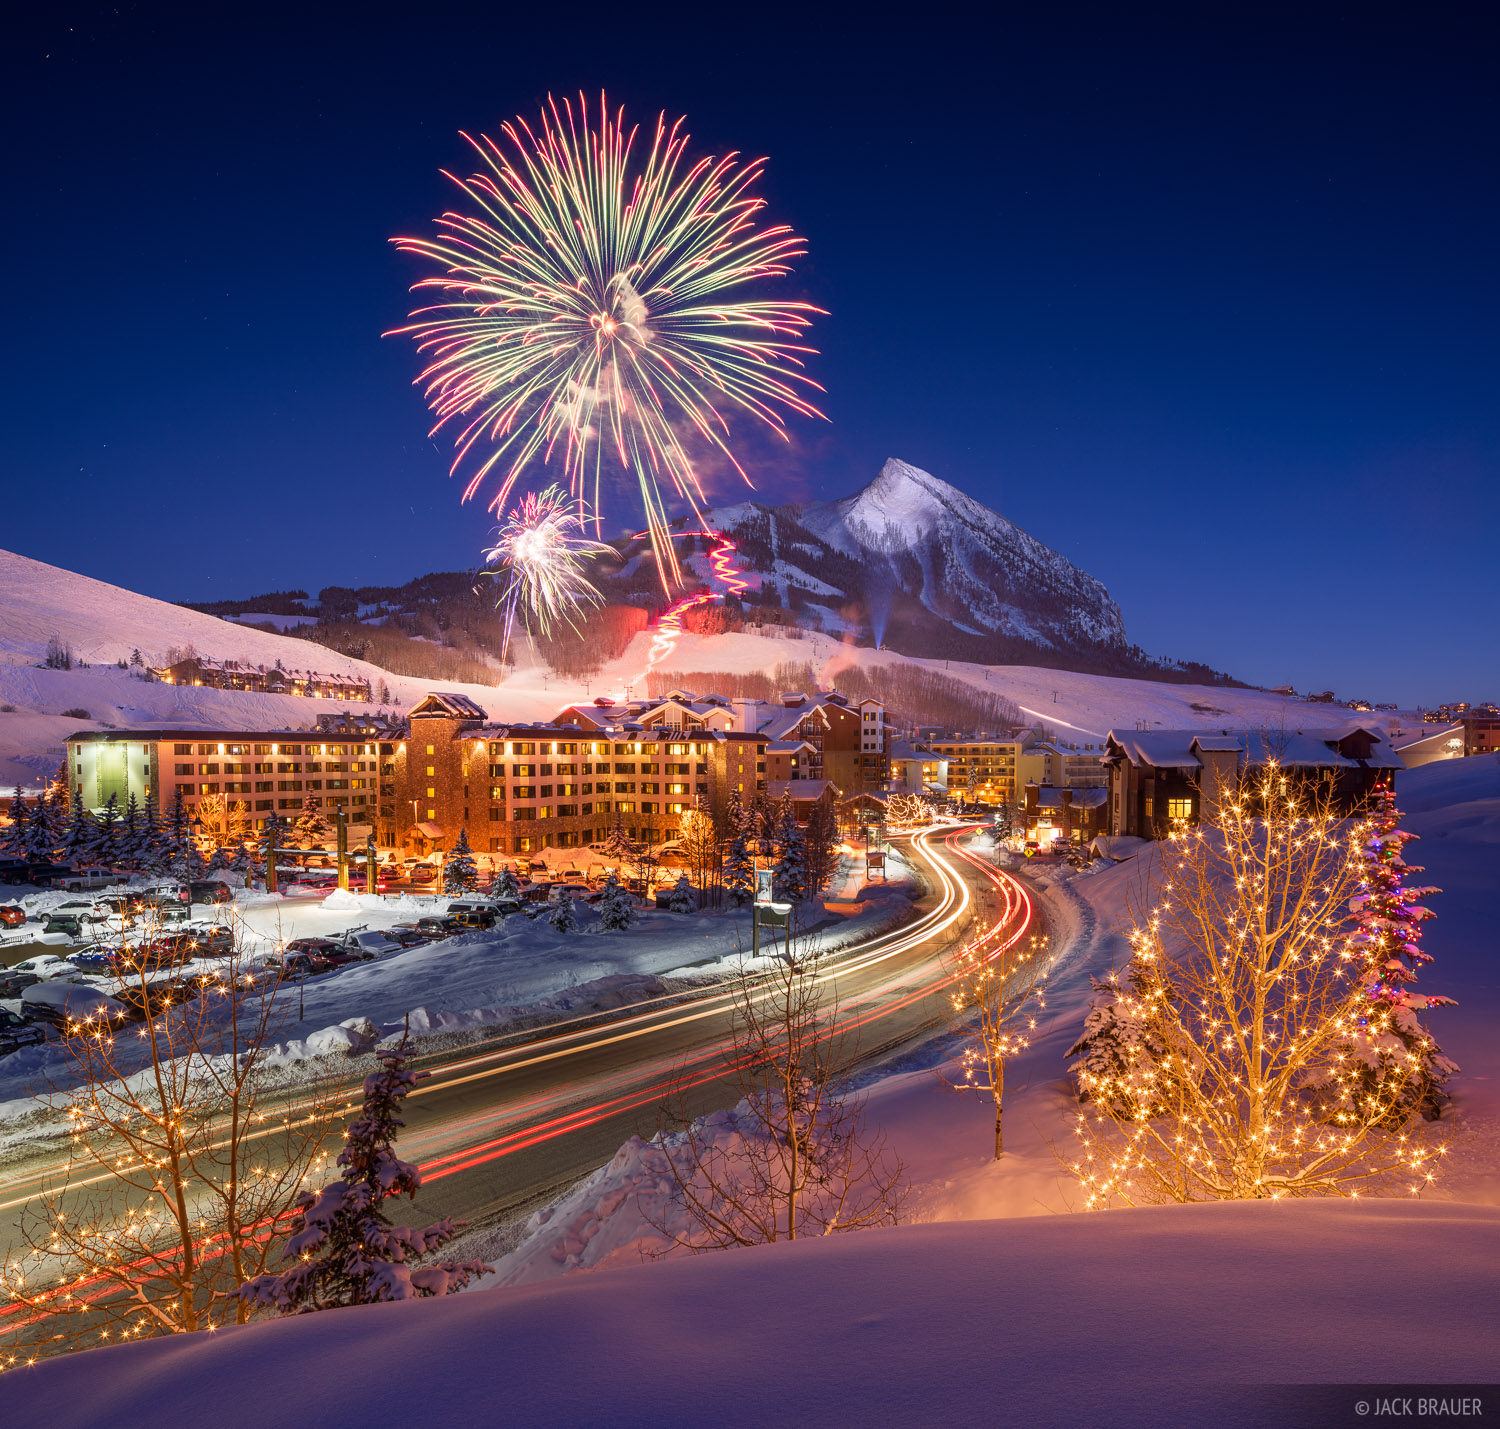 Colorado,Crested Butte,fireworks, New Year, torchlight parade, photo